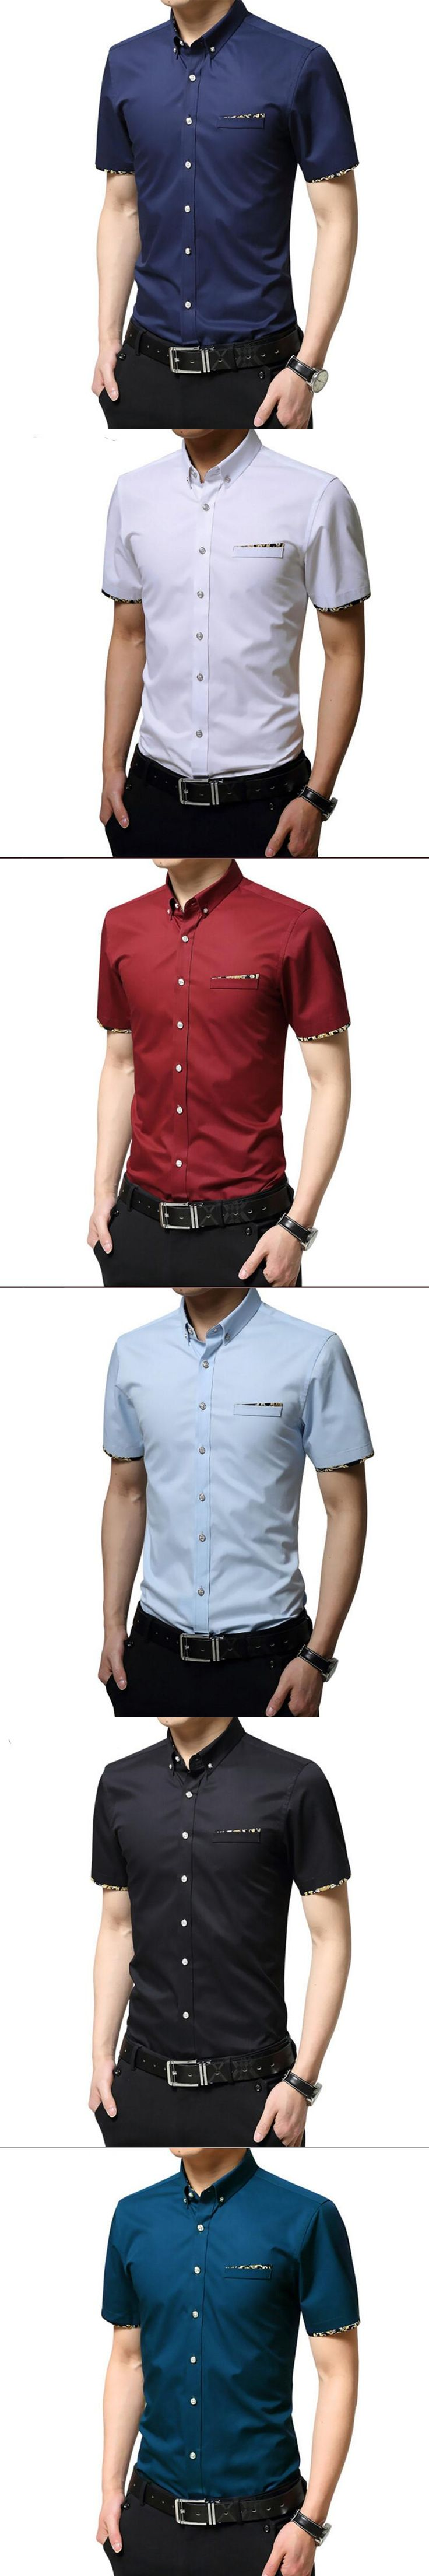 Summer Business Casual Male Shirt 100% Men's Cotton Clothing Formal White Shirt Slim Male Short-sleeve